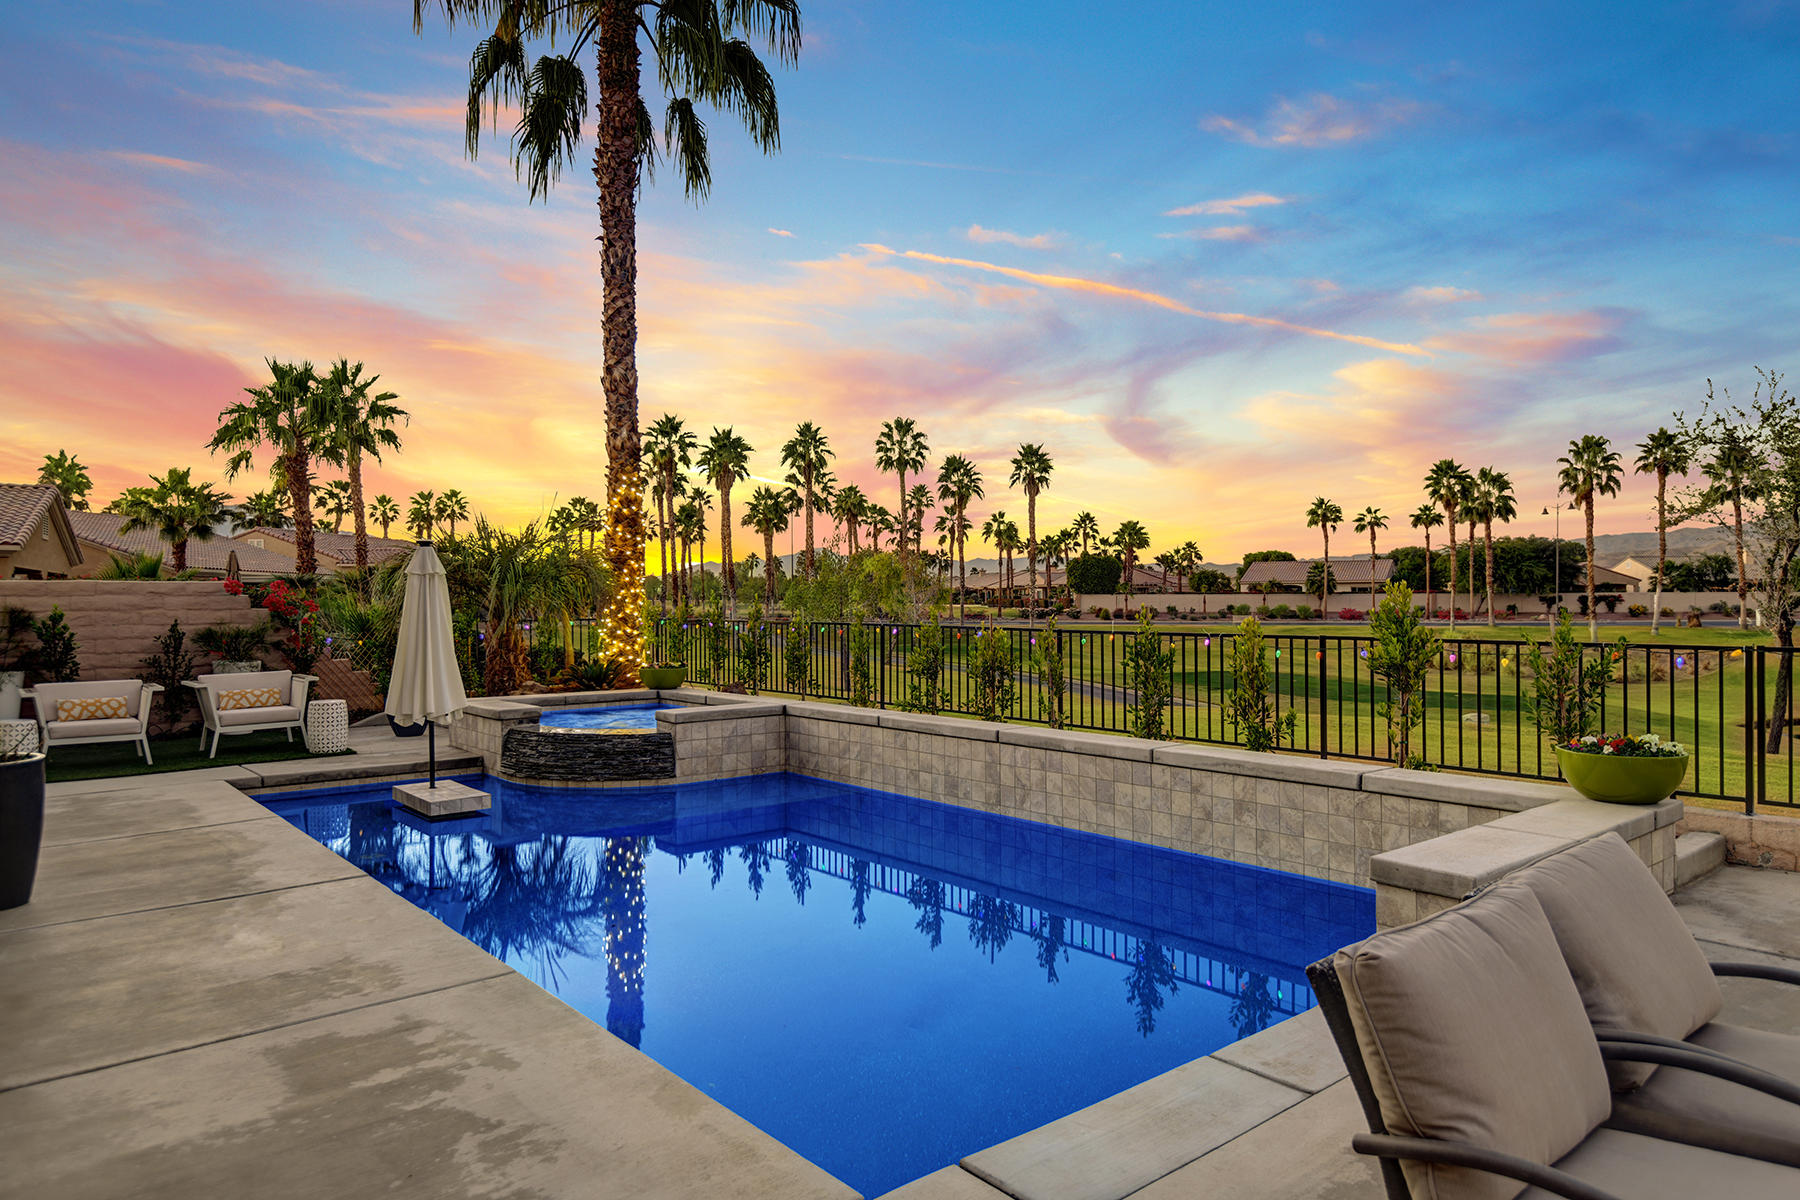 EYE CANDY every day from Great Room, across PRIVATE POOL, over LAKE on FAIRWAY, to backdrop of Little San Bernardino MOUNTAINS. Entertainers allure is BBQ Island, covered patio, large tanning shelf & table in pool, raised spa spillover plus water streams.  Popular Avalino Plan, built to 1,763 SF (EST.) in 2006. Custom upgrades include tile living areas, wood laminate in office, designer paint, plantation shutters, custom window coverings, fans, recessed lighting and more! Great room open to kitchen, granite countertops, quality cabinets with pulls & lower roll-out shelves, stainless steel appliances with gas cooktop & double ovens, plus a step-in pantry. Spacious master suite features dual vanities, oval tub, glass shower, and large closet. So much more to see and enjoy!  Move-in Ready!  Low HOA!  Ownership at Sun City Shadow Hills, active Adult Community 55+. Residents have access to a variety of clubs, activities, tennis, two golf courses (at a nominal fee), fitness classes, state-of-the-art fitness equipment, resort-like pools and spas, two clubhouses, dining & dog parks.